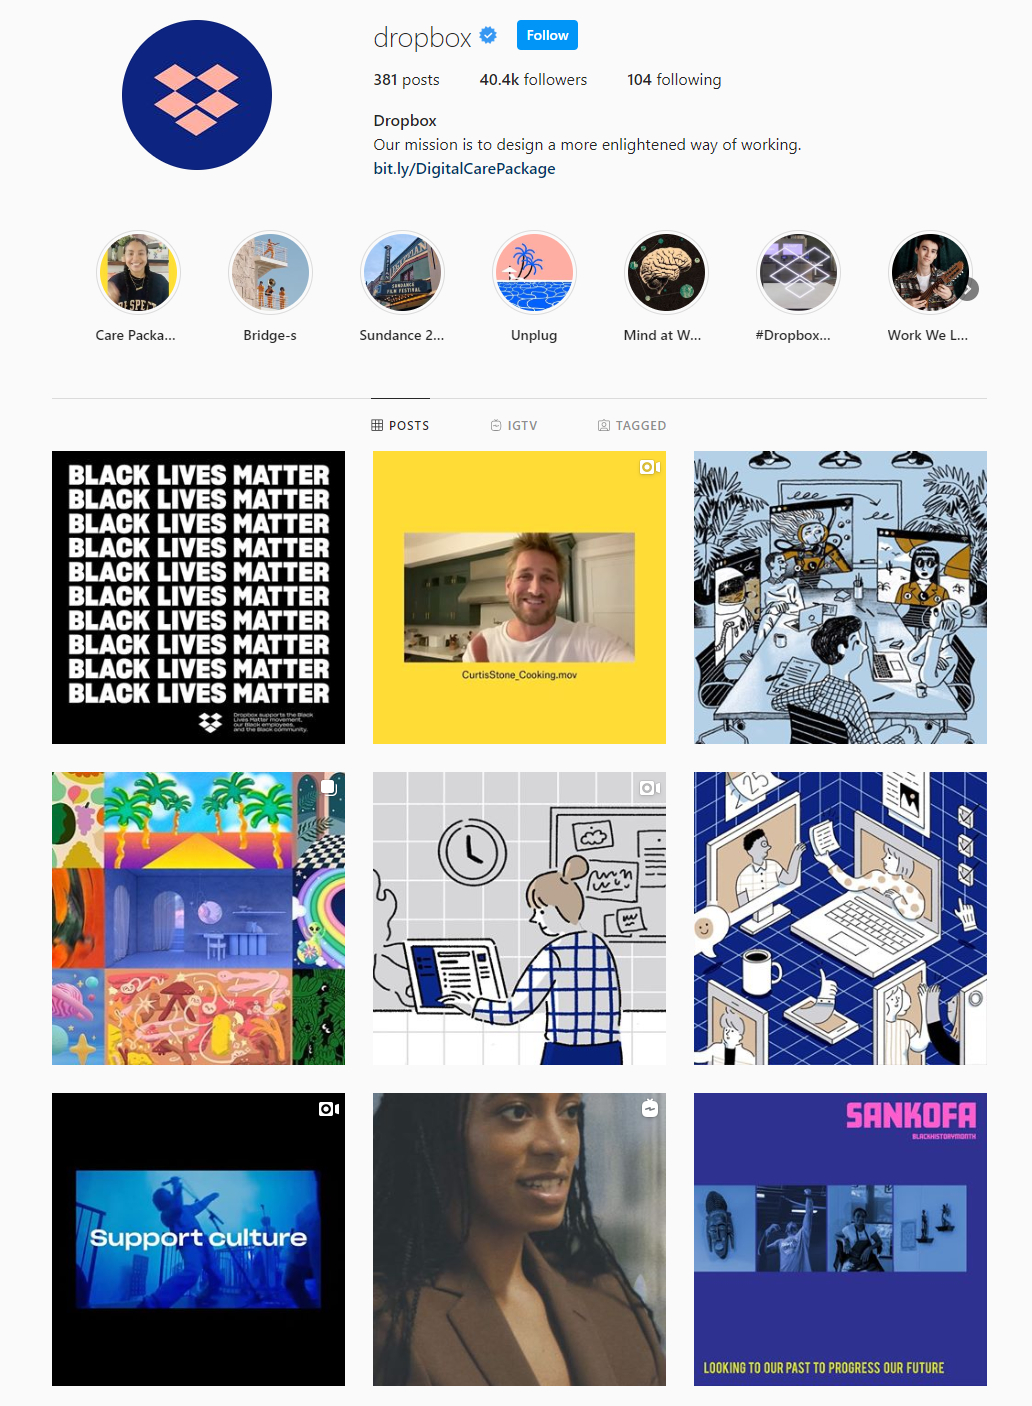 instagram profile example from dropbox